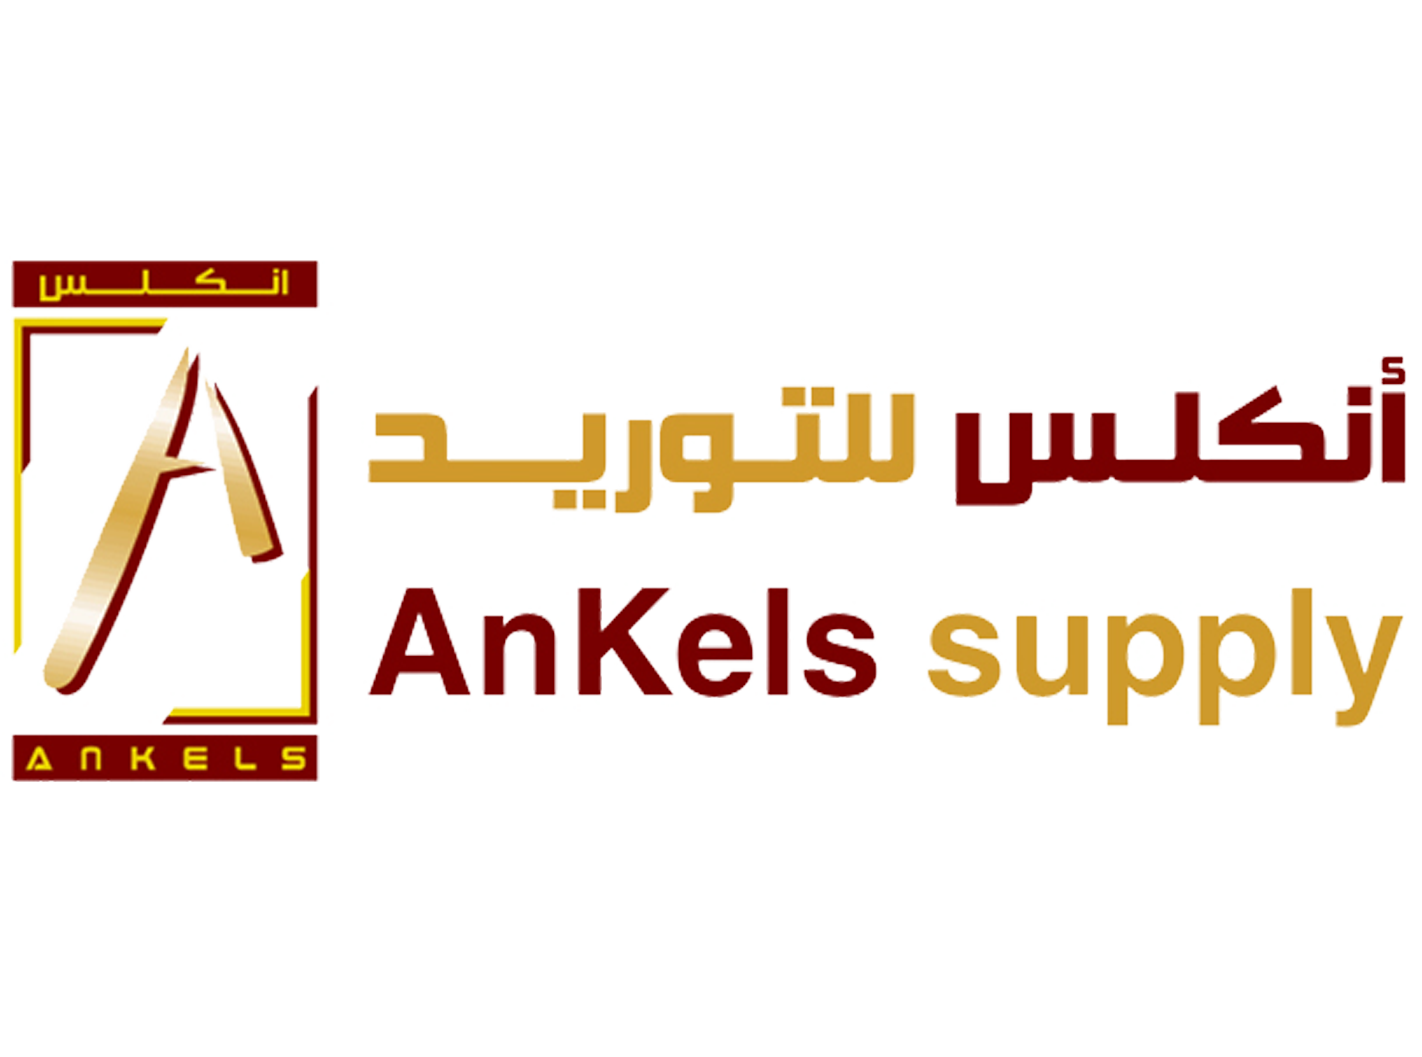 Ankels For Supply